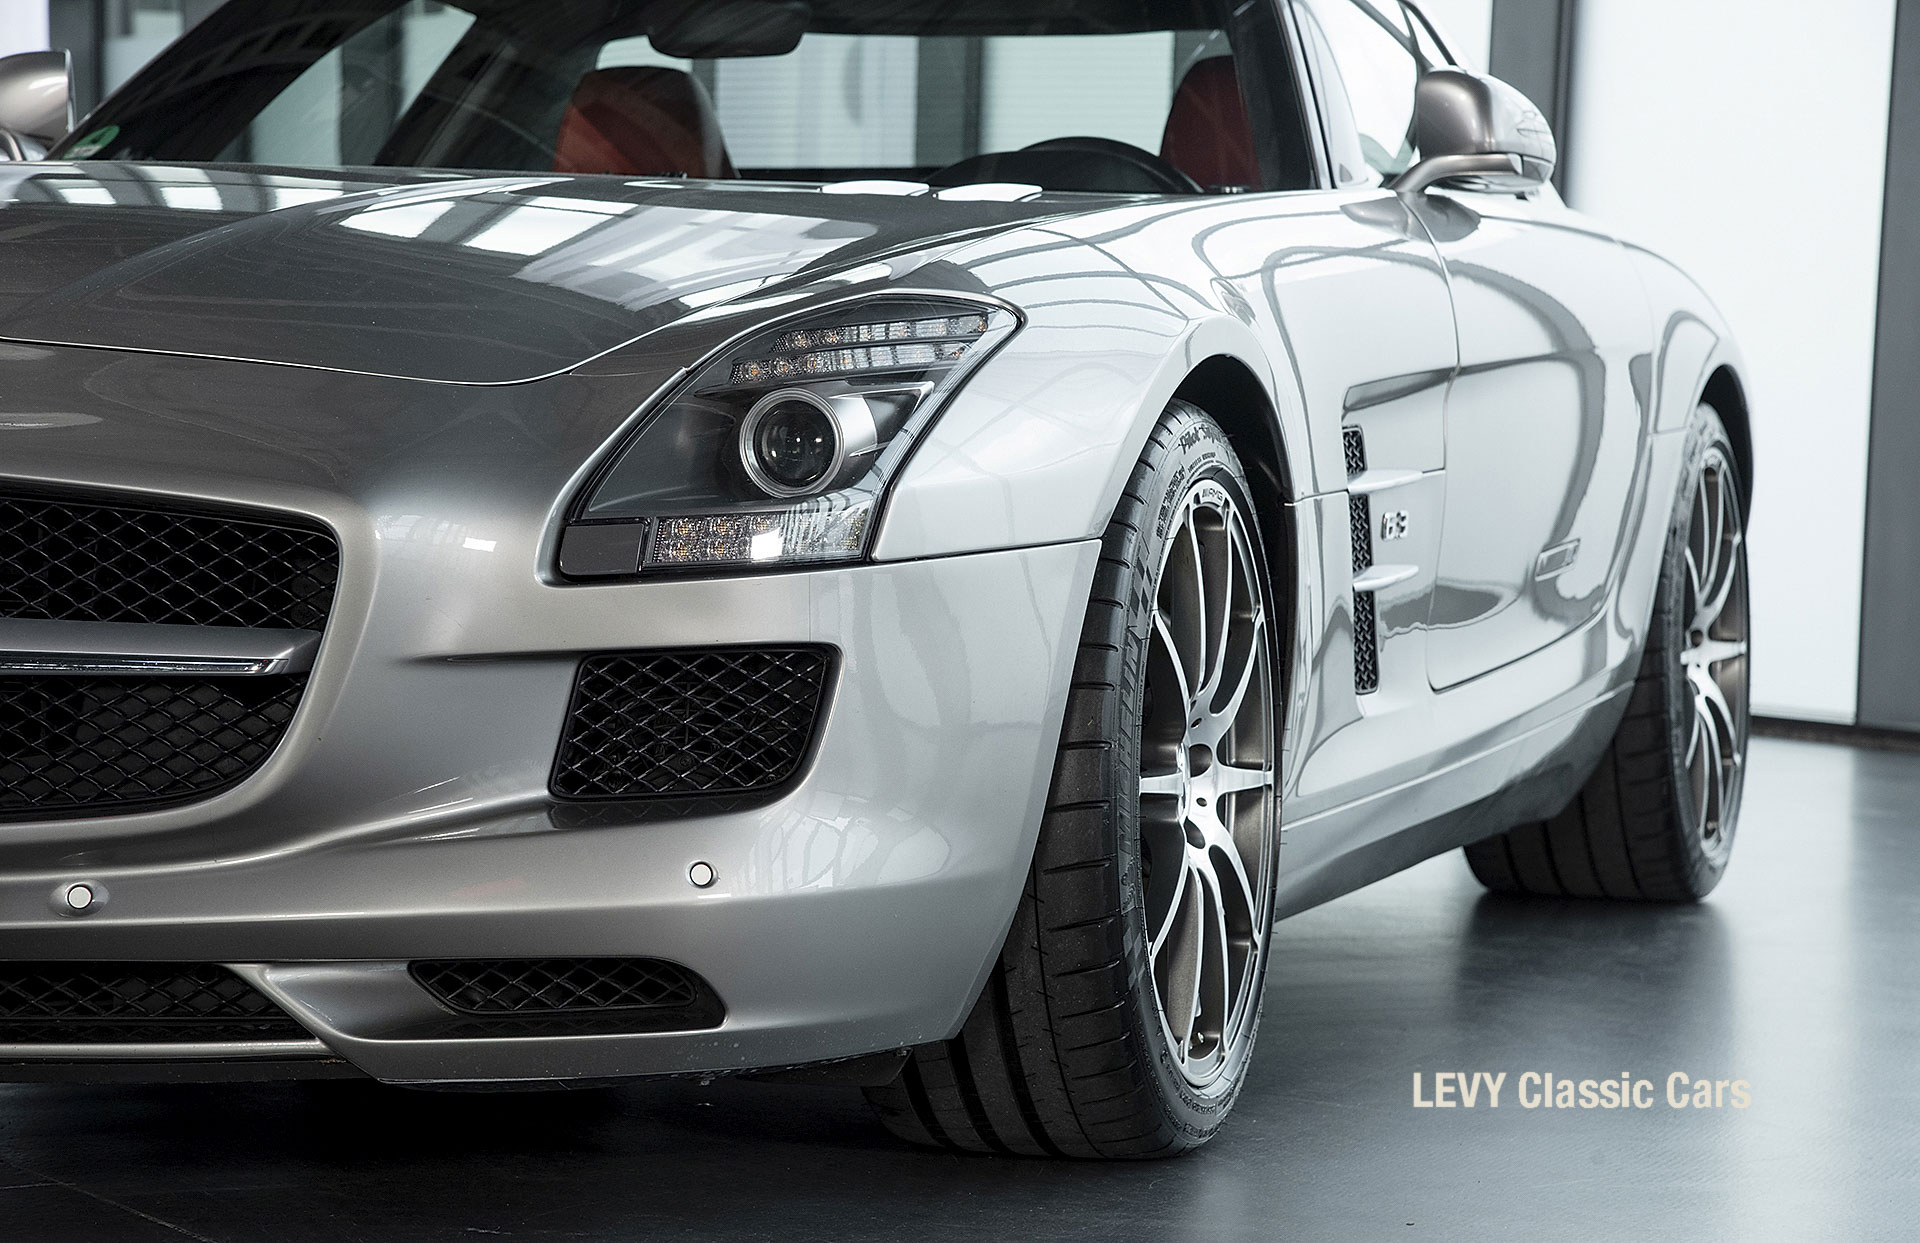 MB SLS AMG 6,3 Coupe 05633 072